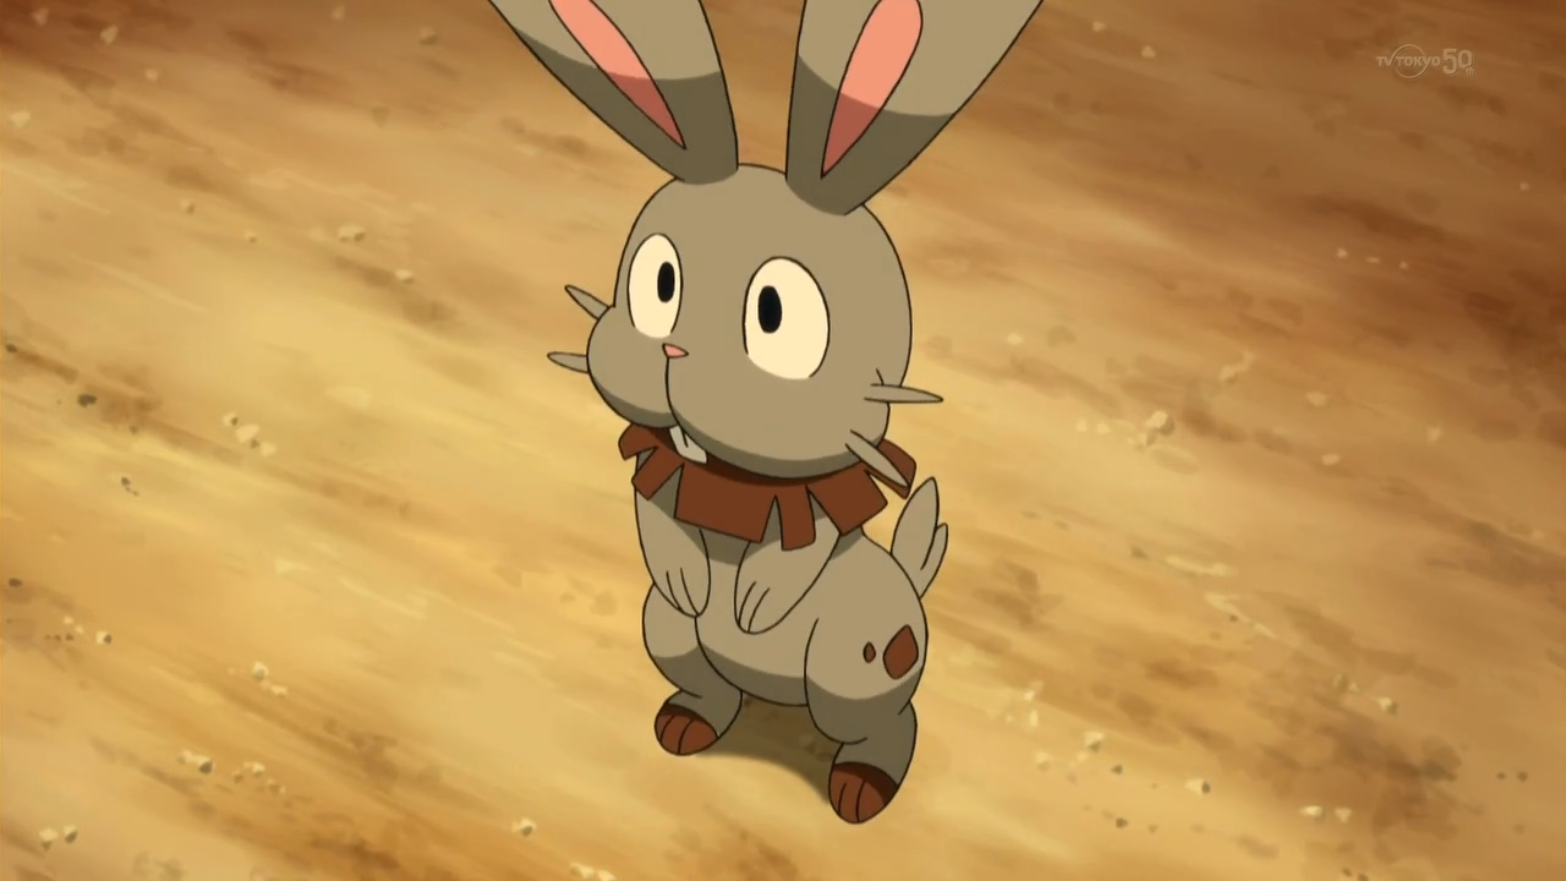 Clemont (anime) | Pokémon Wiki | Fandom powered by Wikia: http://pokemon.wikia.com/wiki/Clemont_(anime)